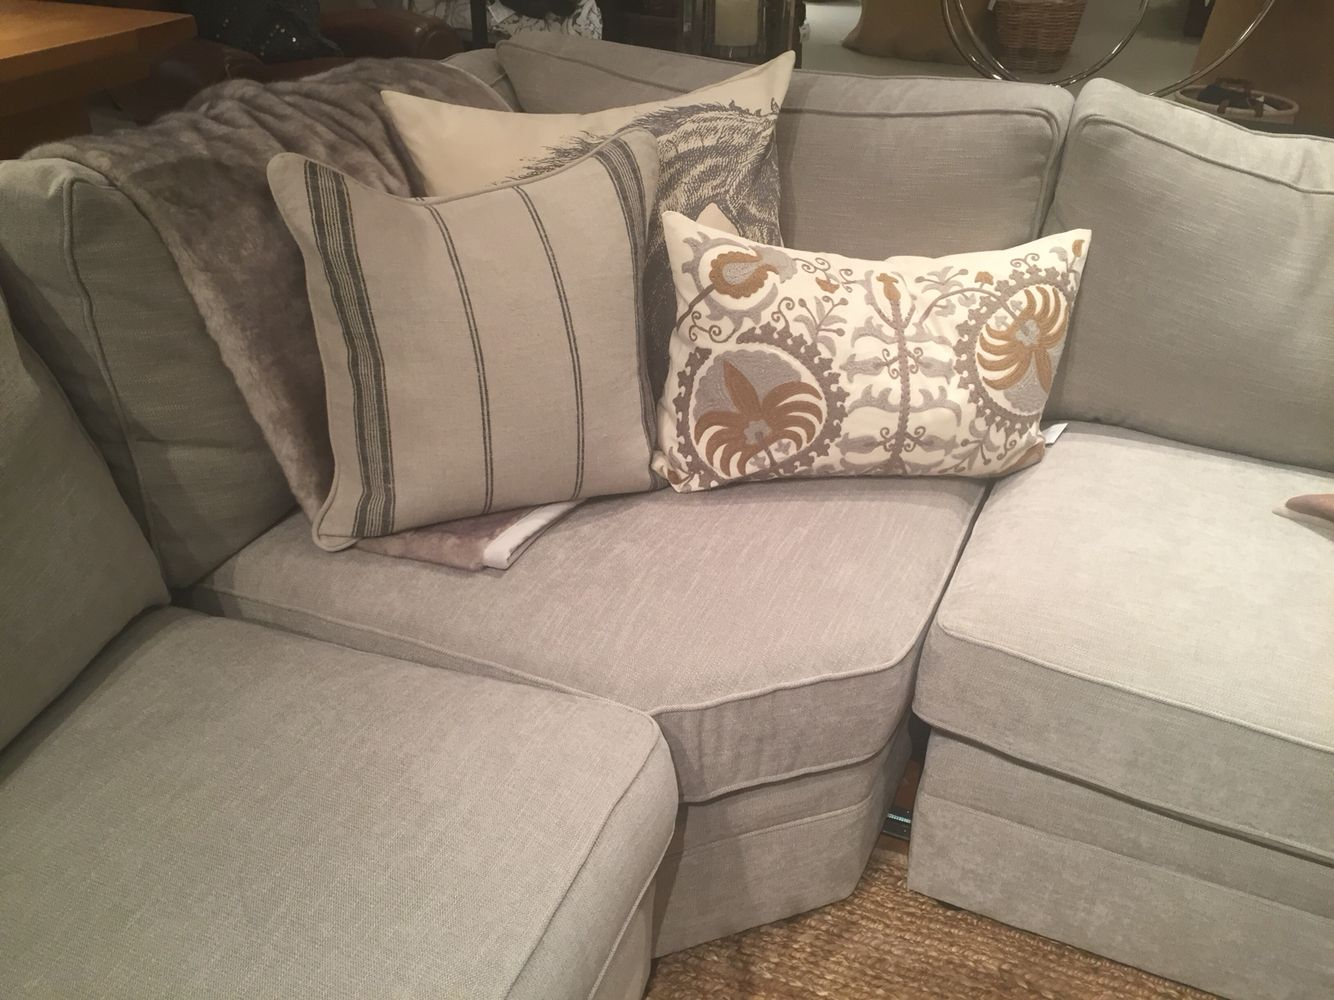 Pottery Barn Silver Taupe Performance Tweed   really like the look and feel  of this fabric. Pottery Barn Silver Taupe Performance Tweed   really like the look